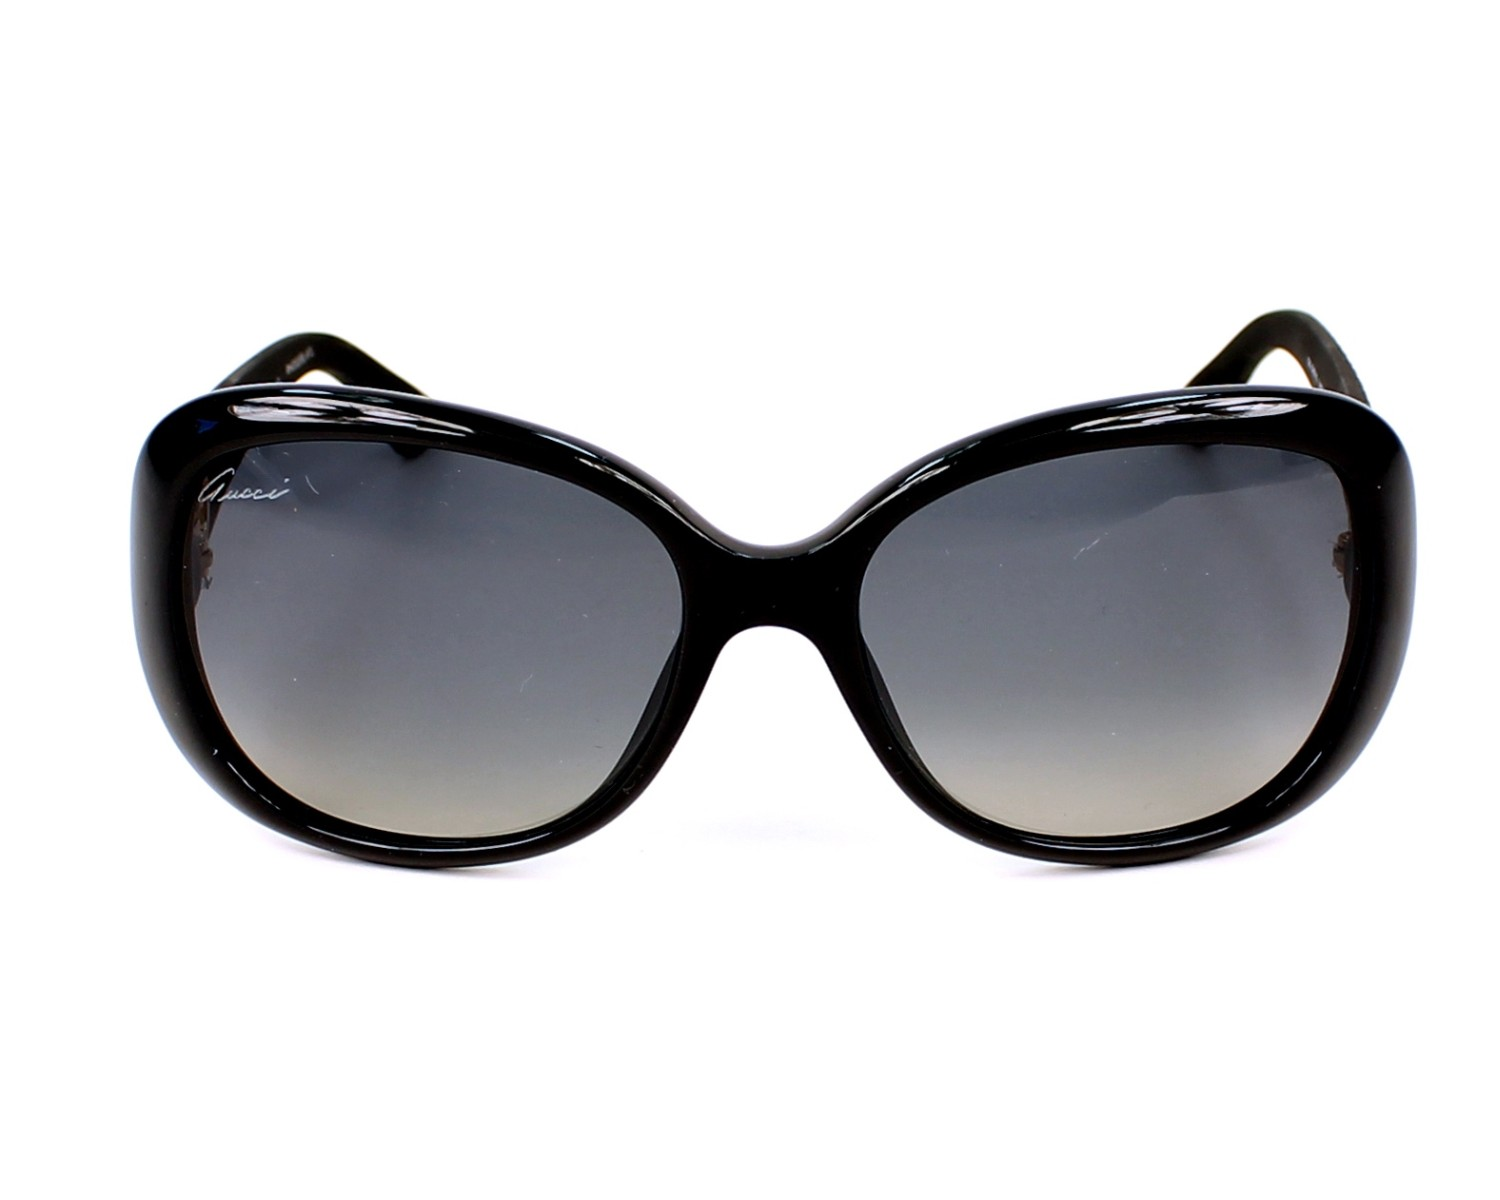 fe4cf344f6 thumbnail Sunglasses Gucci GG-3787-S LWD DX - Black front view